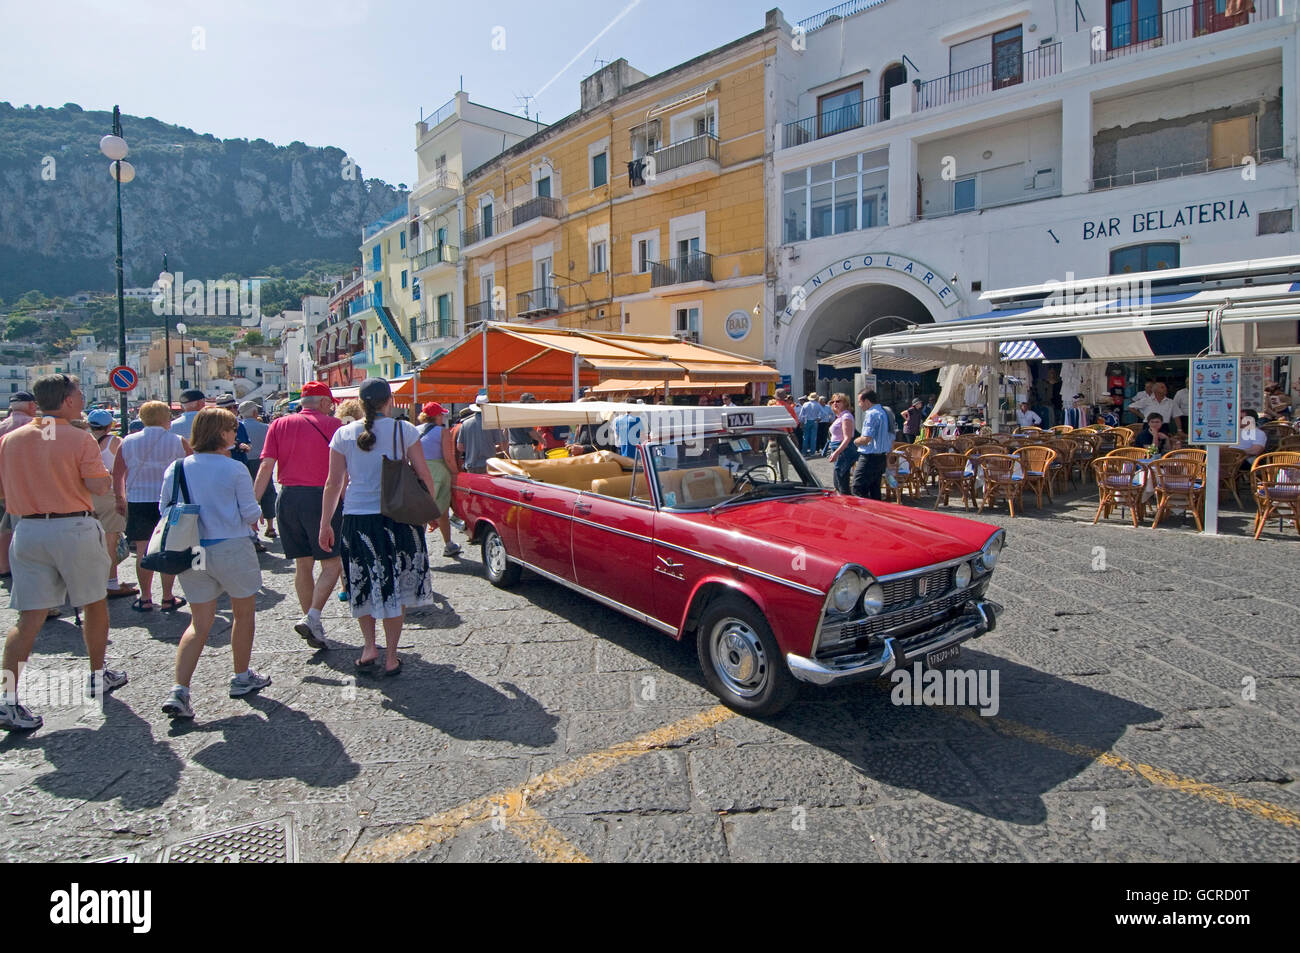 An ancient but pristine open topped car serves as a taxi on the Isle of Capri in the Bay of Naples, Italy - Stock Image